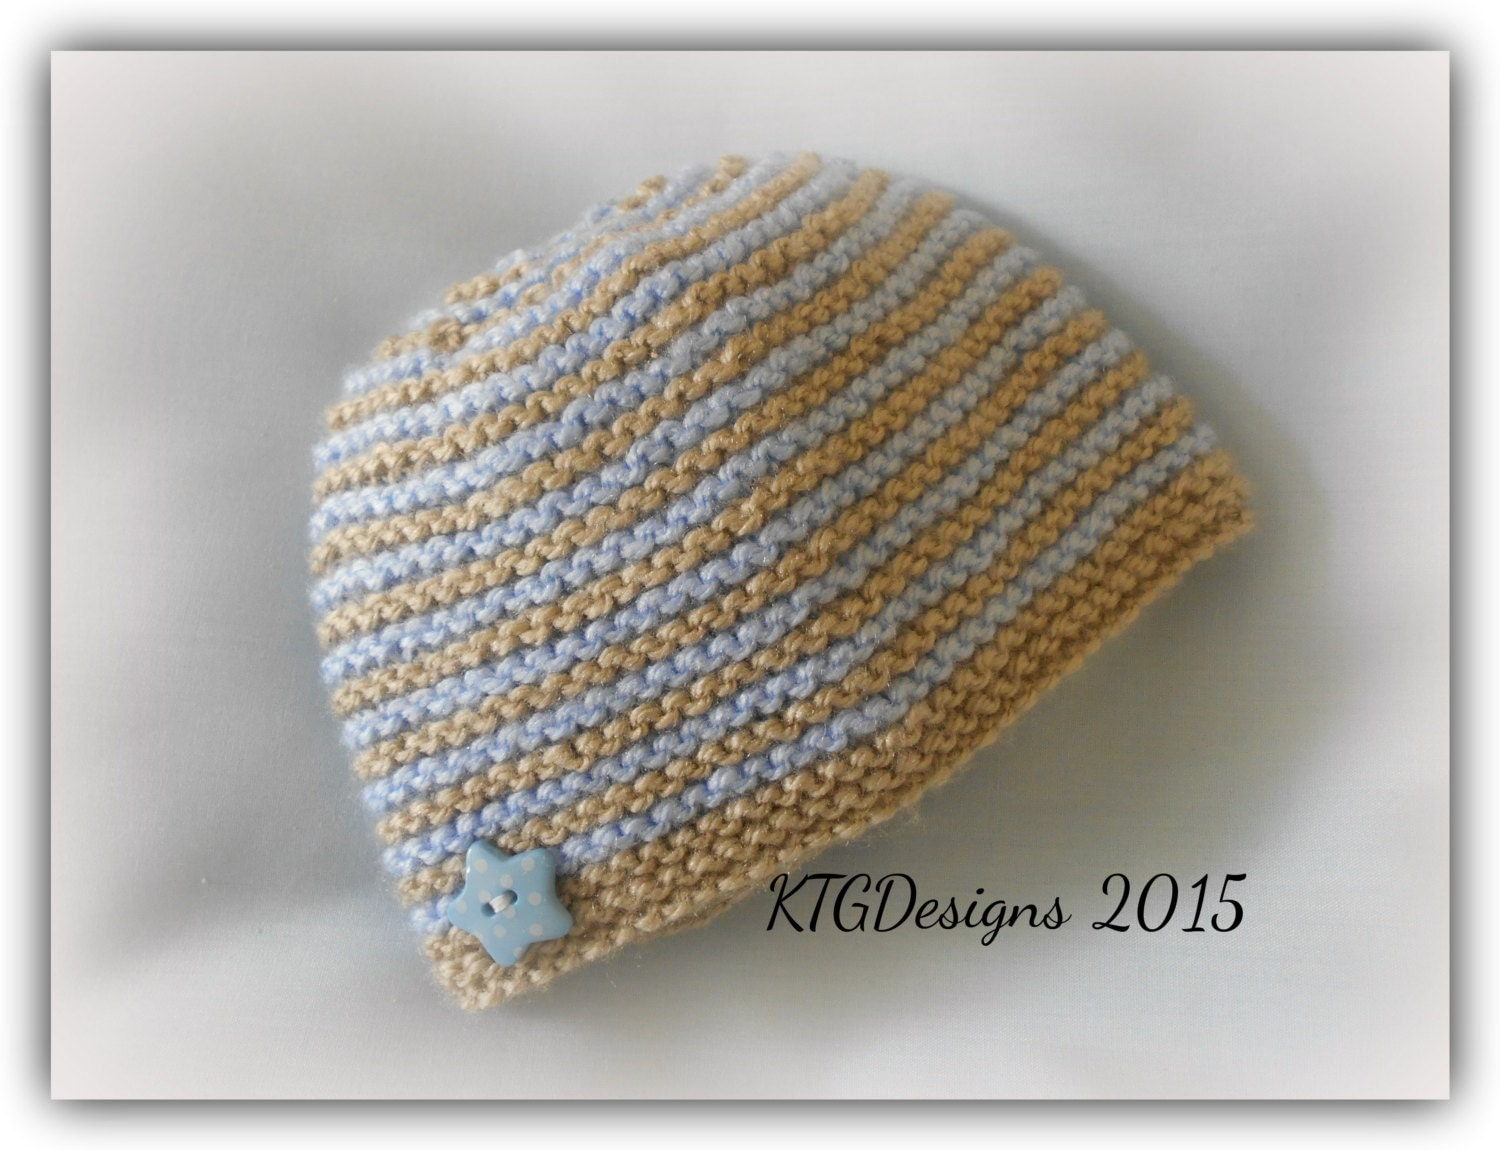 Knitting Patterns Uk For Beginners : Dk knitting pattern to knit baby beanie hat easy beginners